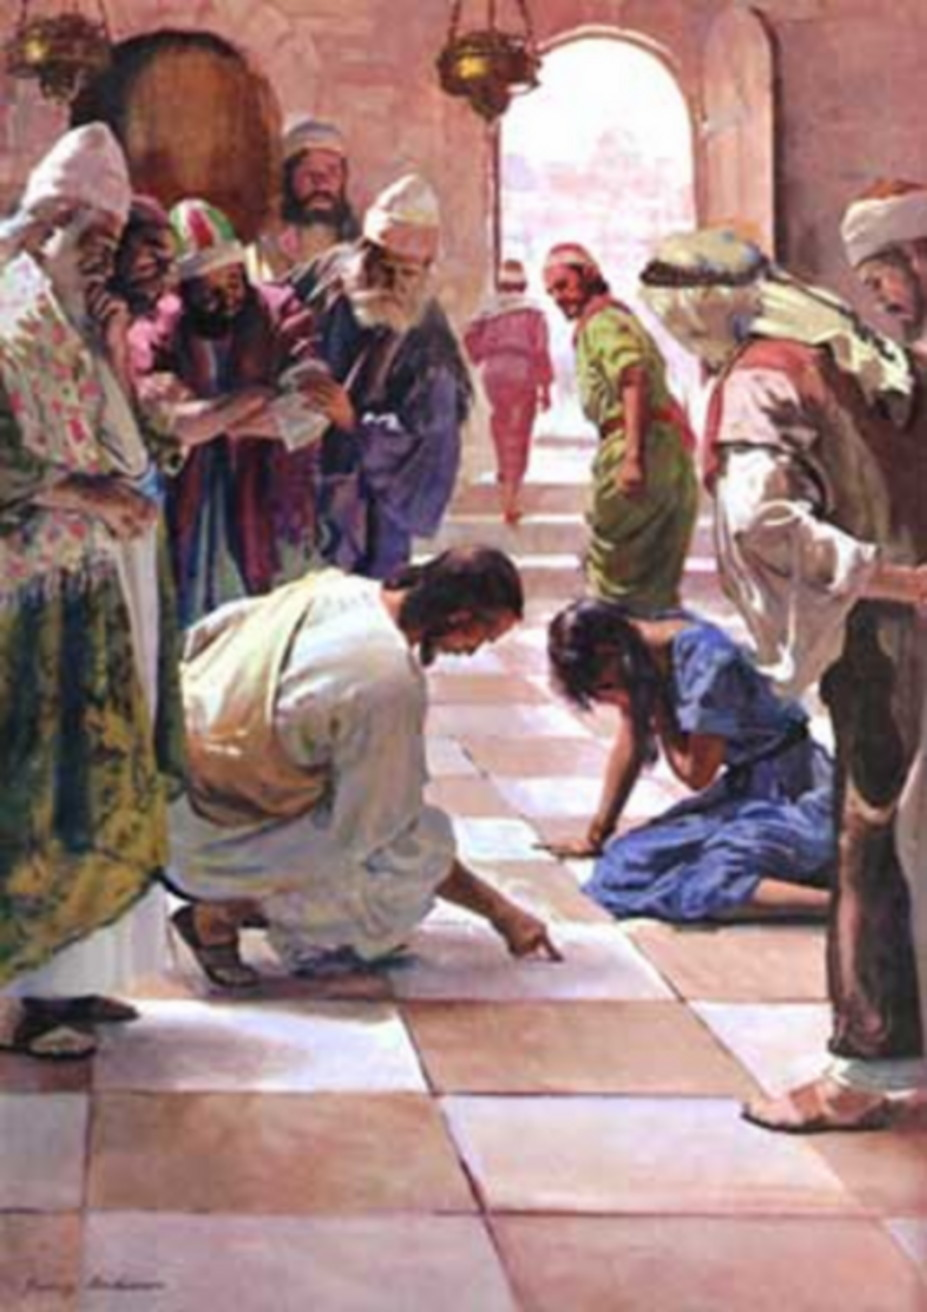 WOMEN AT THE WELL PICTURES OF JESUS ART